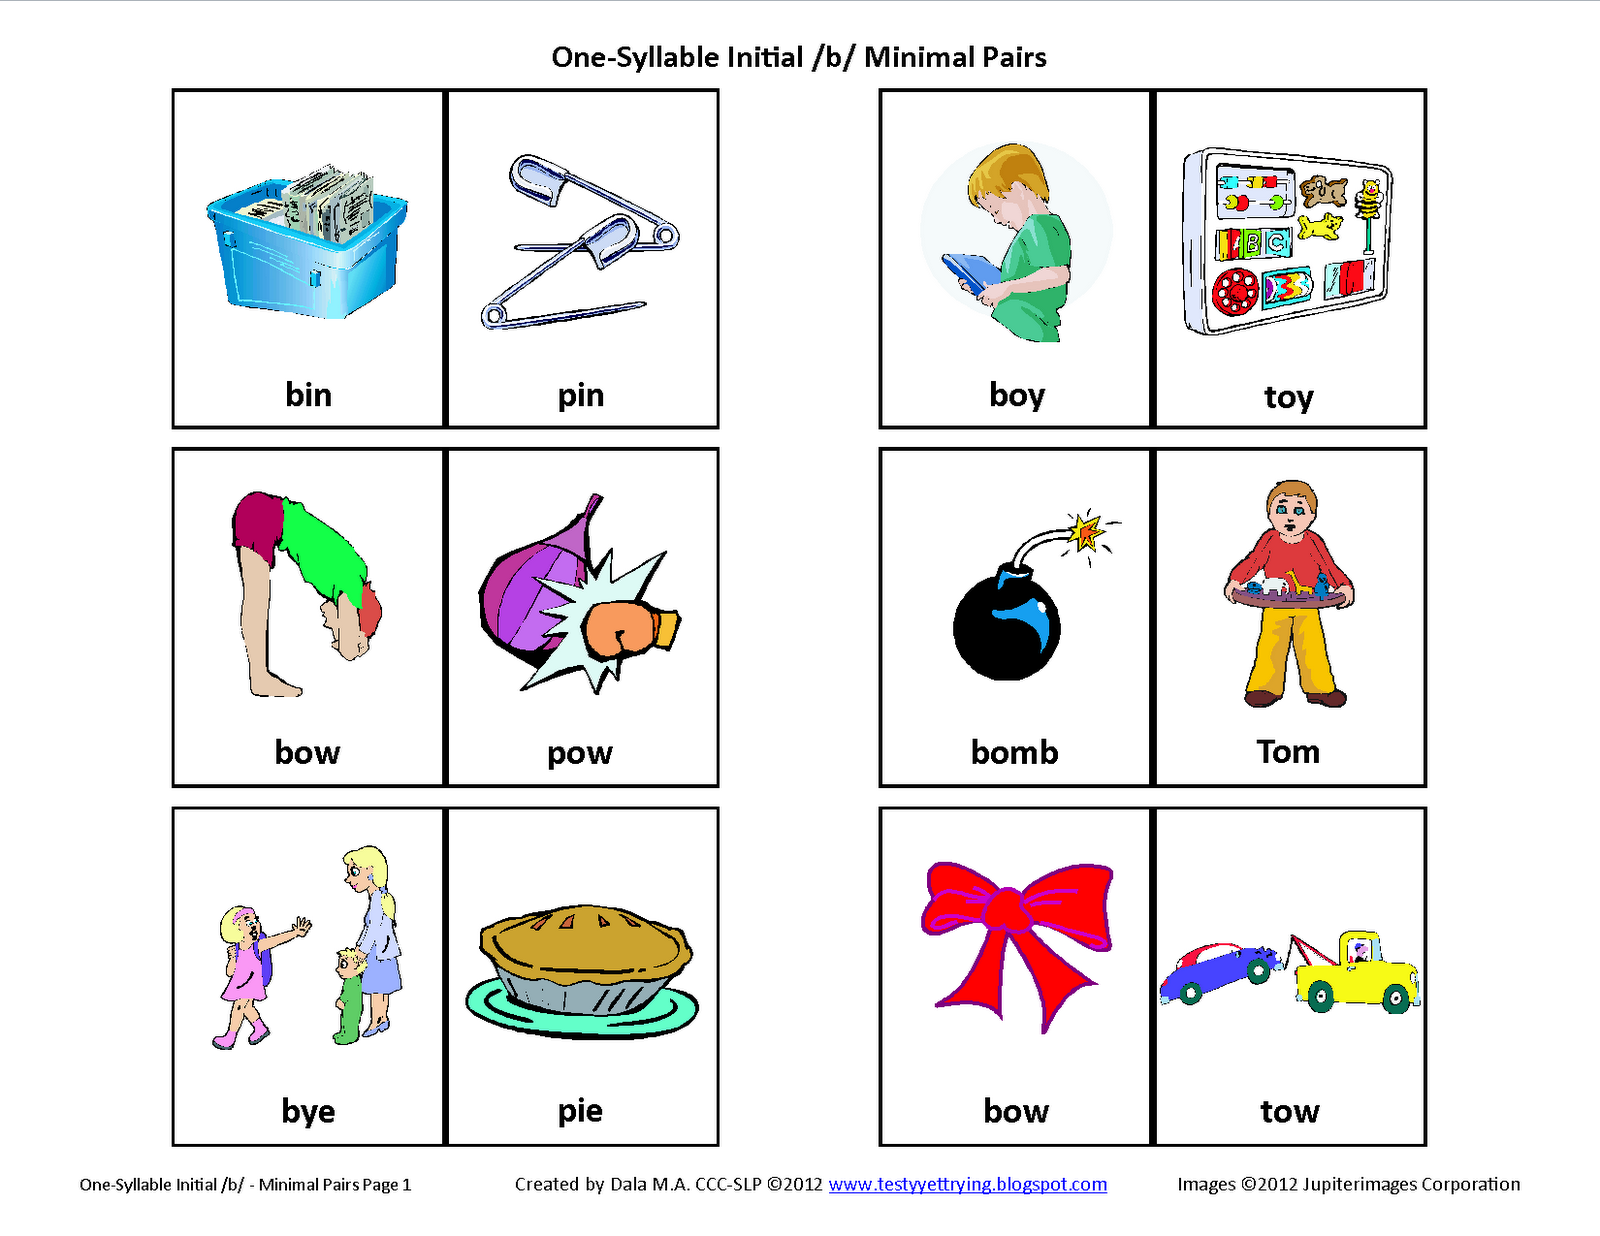 worksheet Minimal Pairs Worksheets vocalic r minimal pairs related keywords suggestions testy yet trying initial b free speech therapy